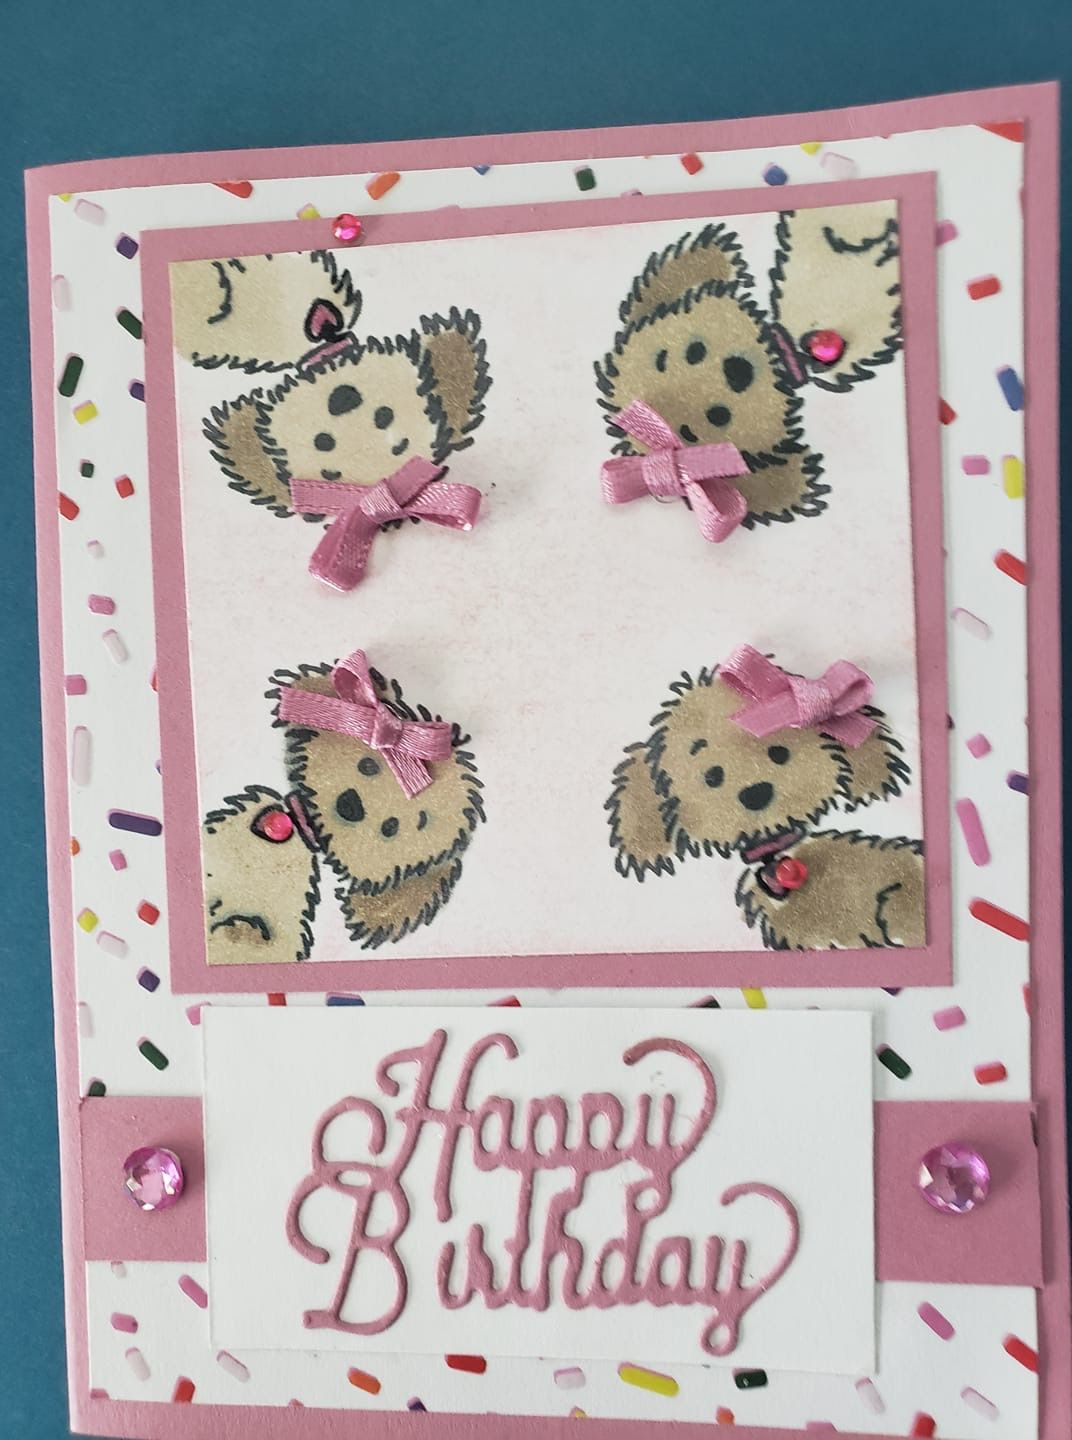 Geburtstagskarte Basteln Hund Love This Card Made With Bella And Friends From Stampin Up